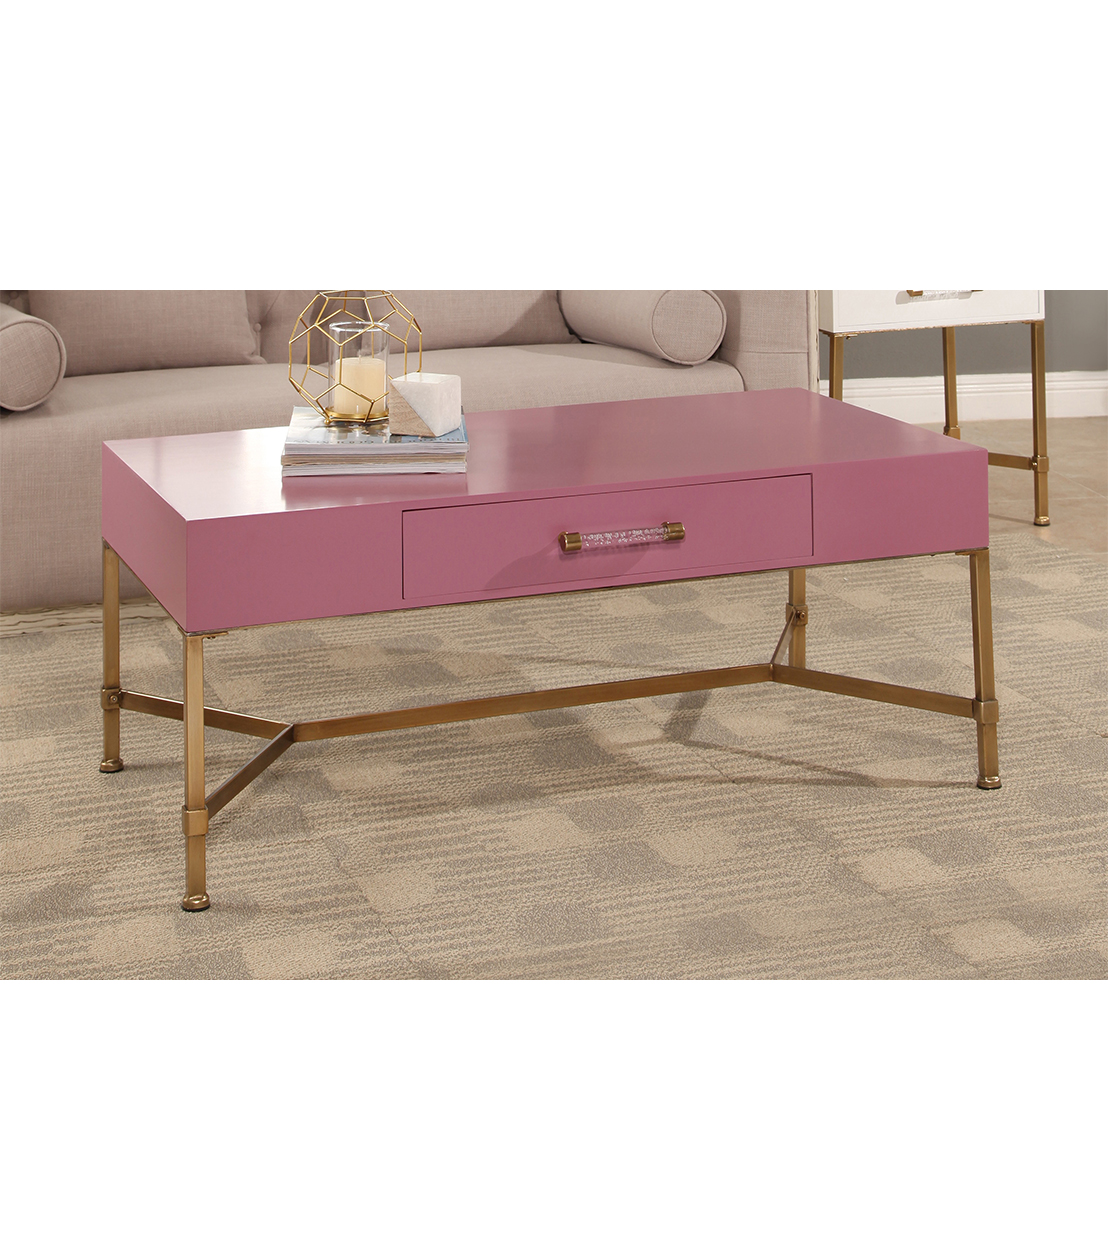 accent tables sophie iron coffee table pink pnk metal wood and glass designs mirrored occasional bedroom furniture manufacturers chair cover factory blue lamp shade small desks